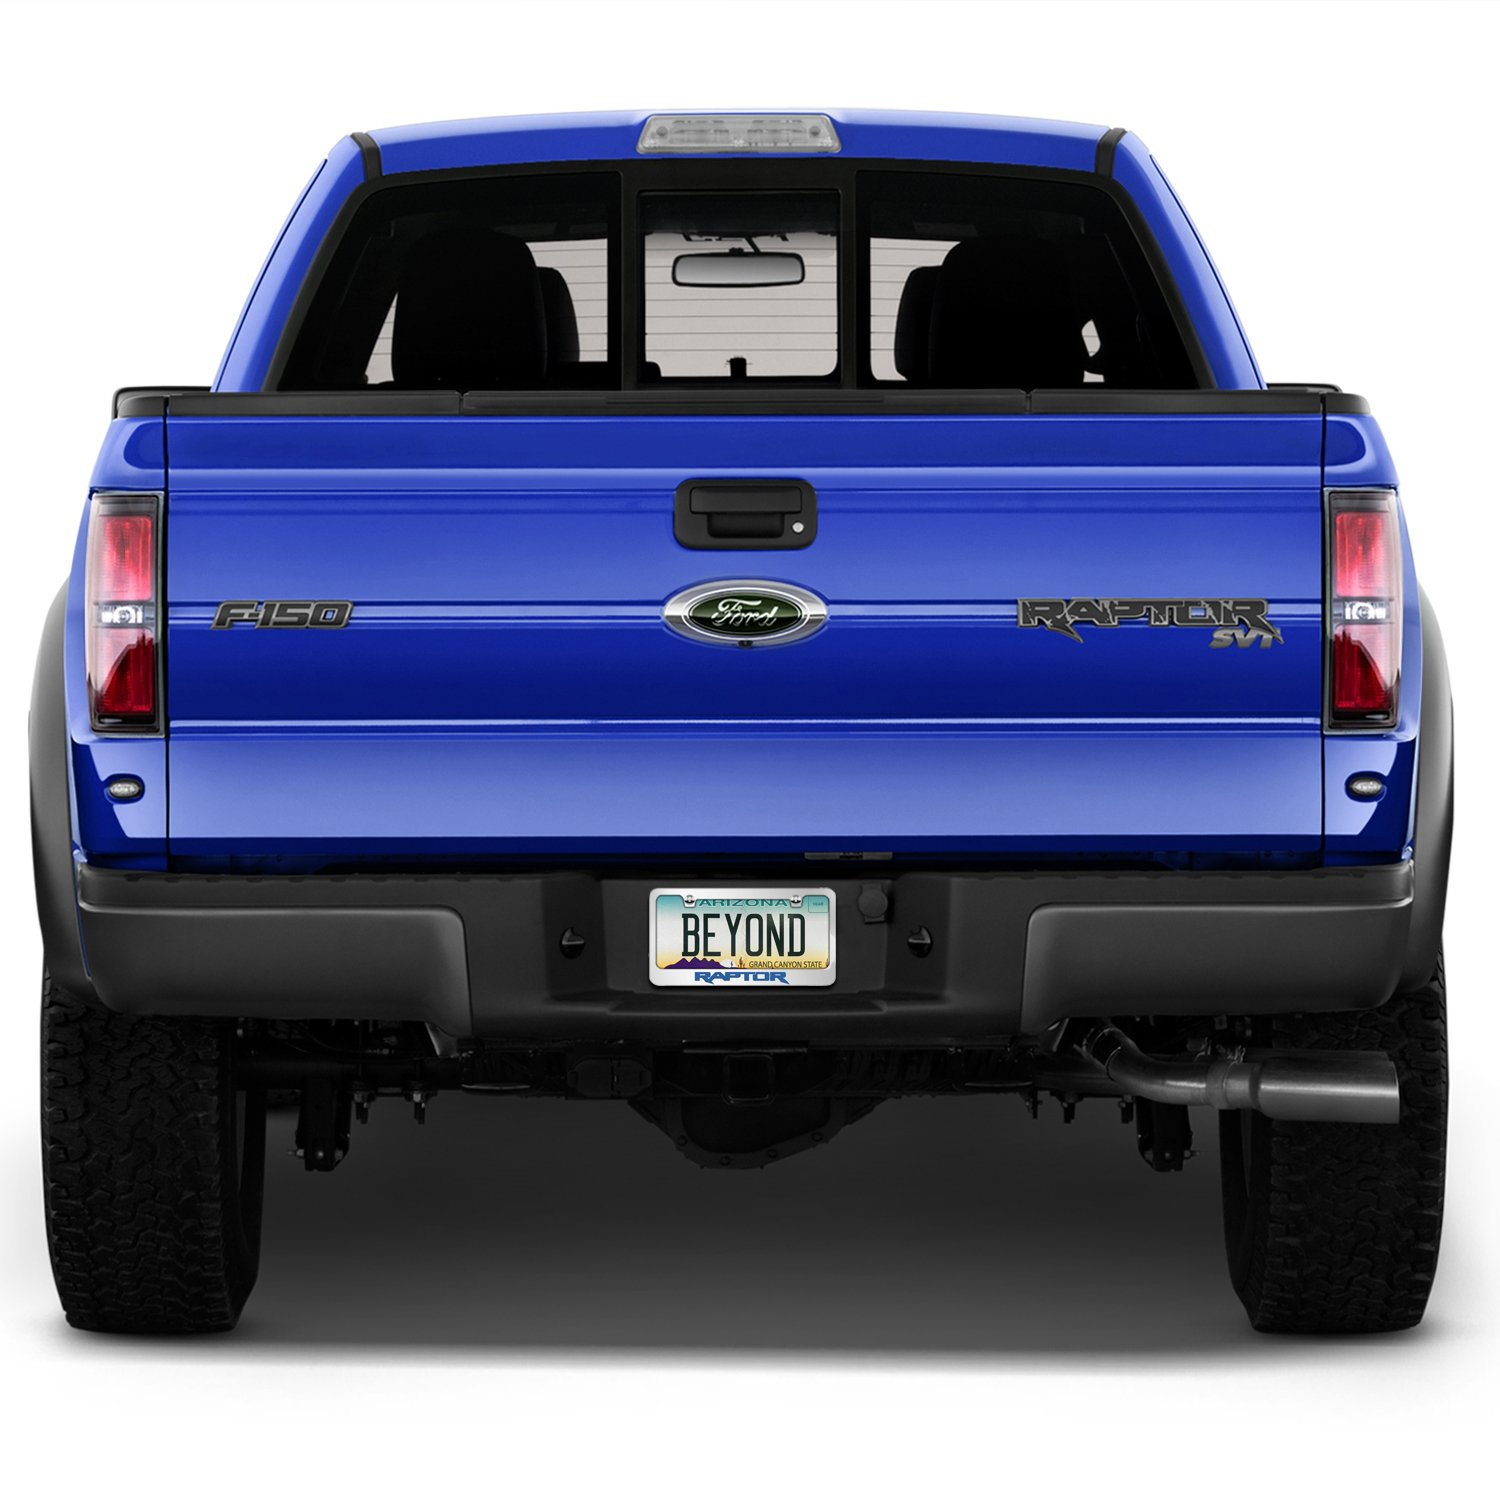 Official Licensed Product Made in the USA Ford F-150 Raptor in Blue Mirror Chrome Metal License Plate Frame by iPick Image